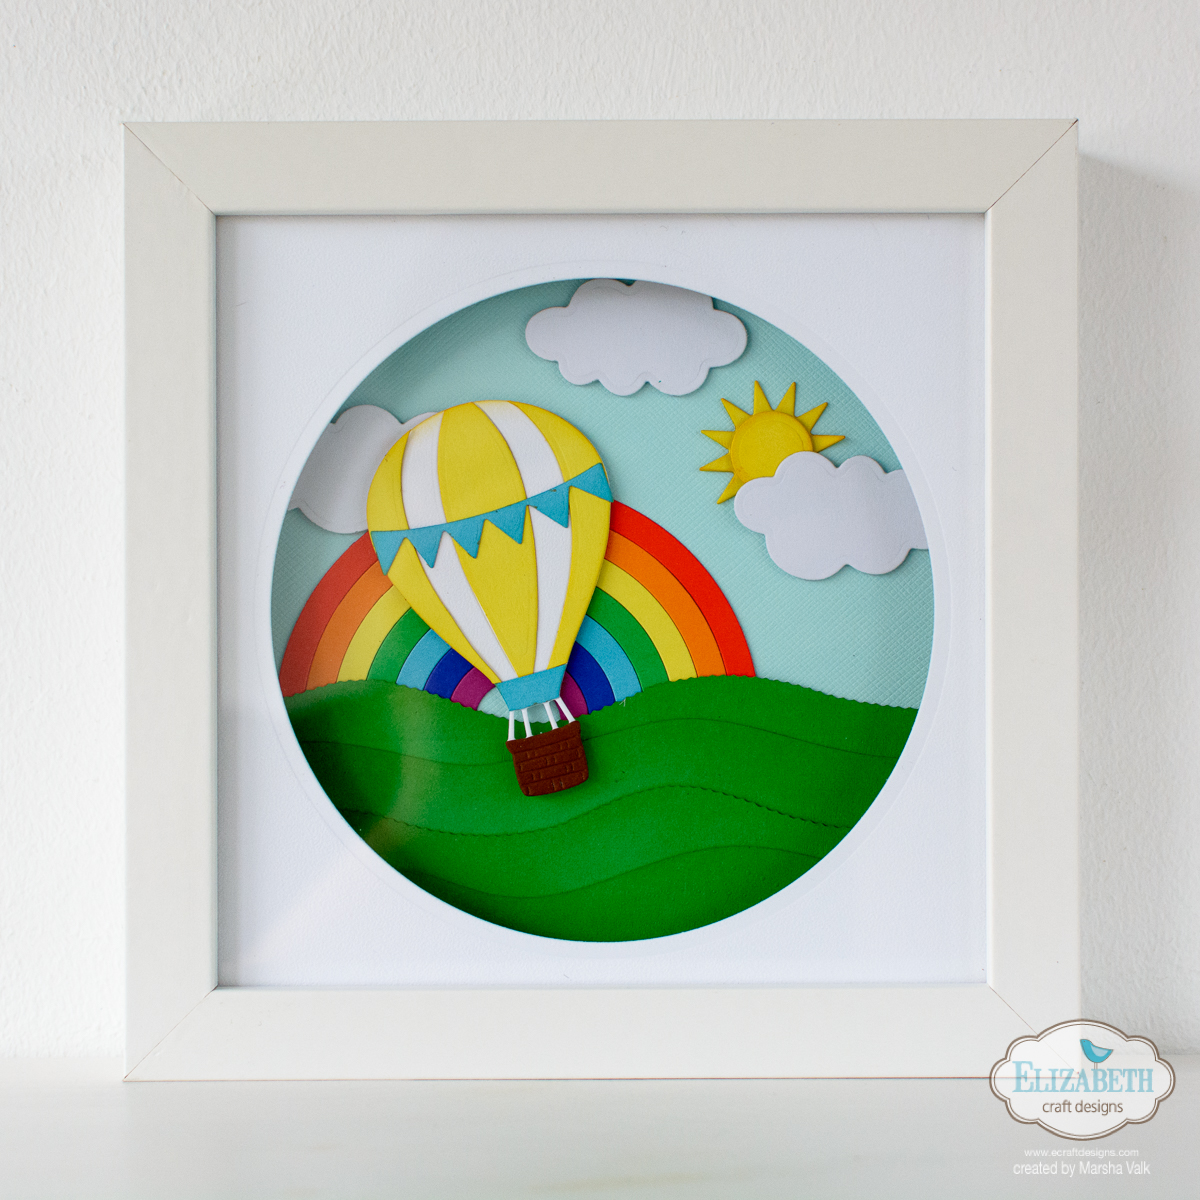 Elizabeth Craft Designs Fly With Me To The Rainbow Shadow Box